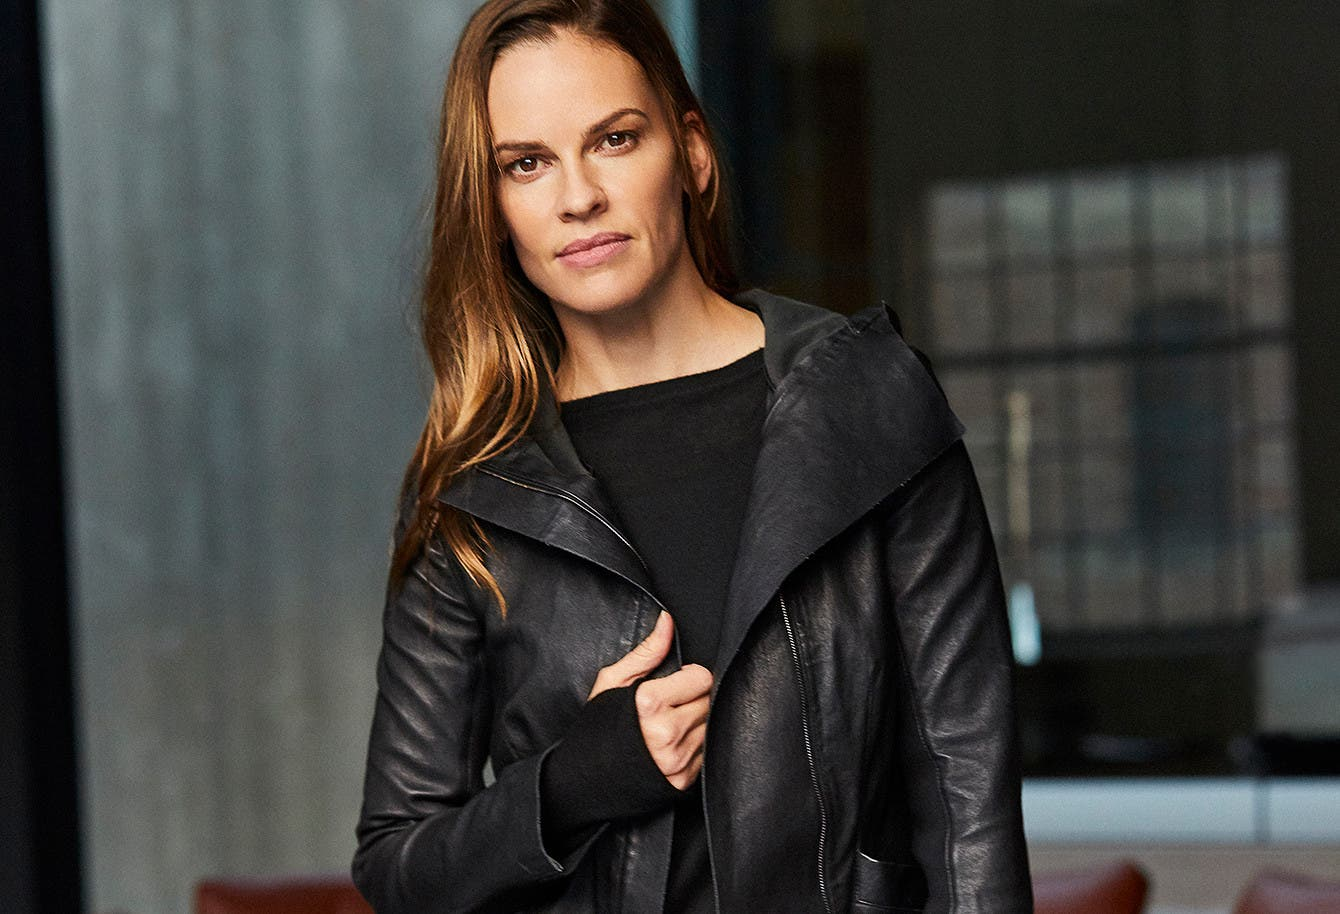 Our interview on a day in the life of Hilary Swank.